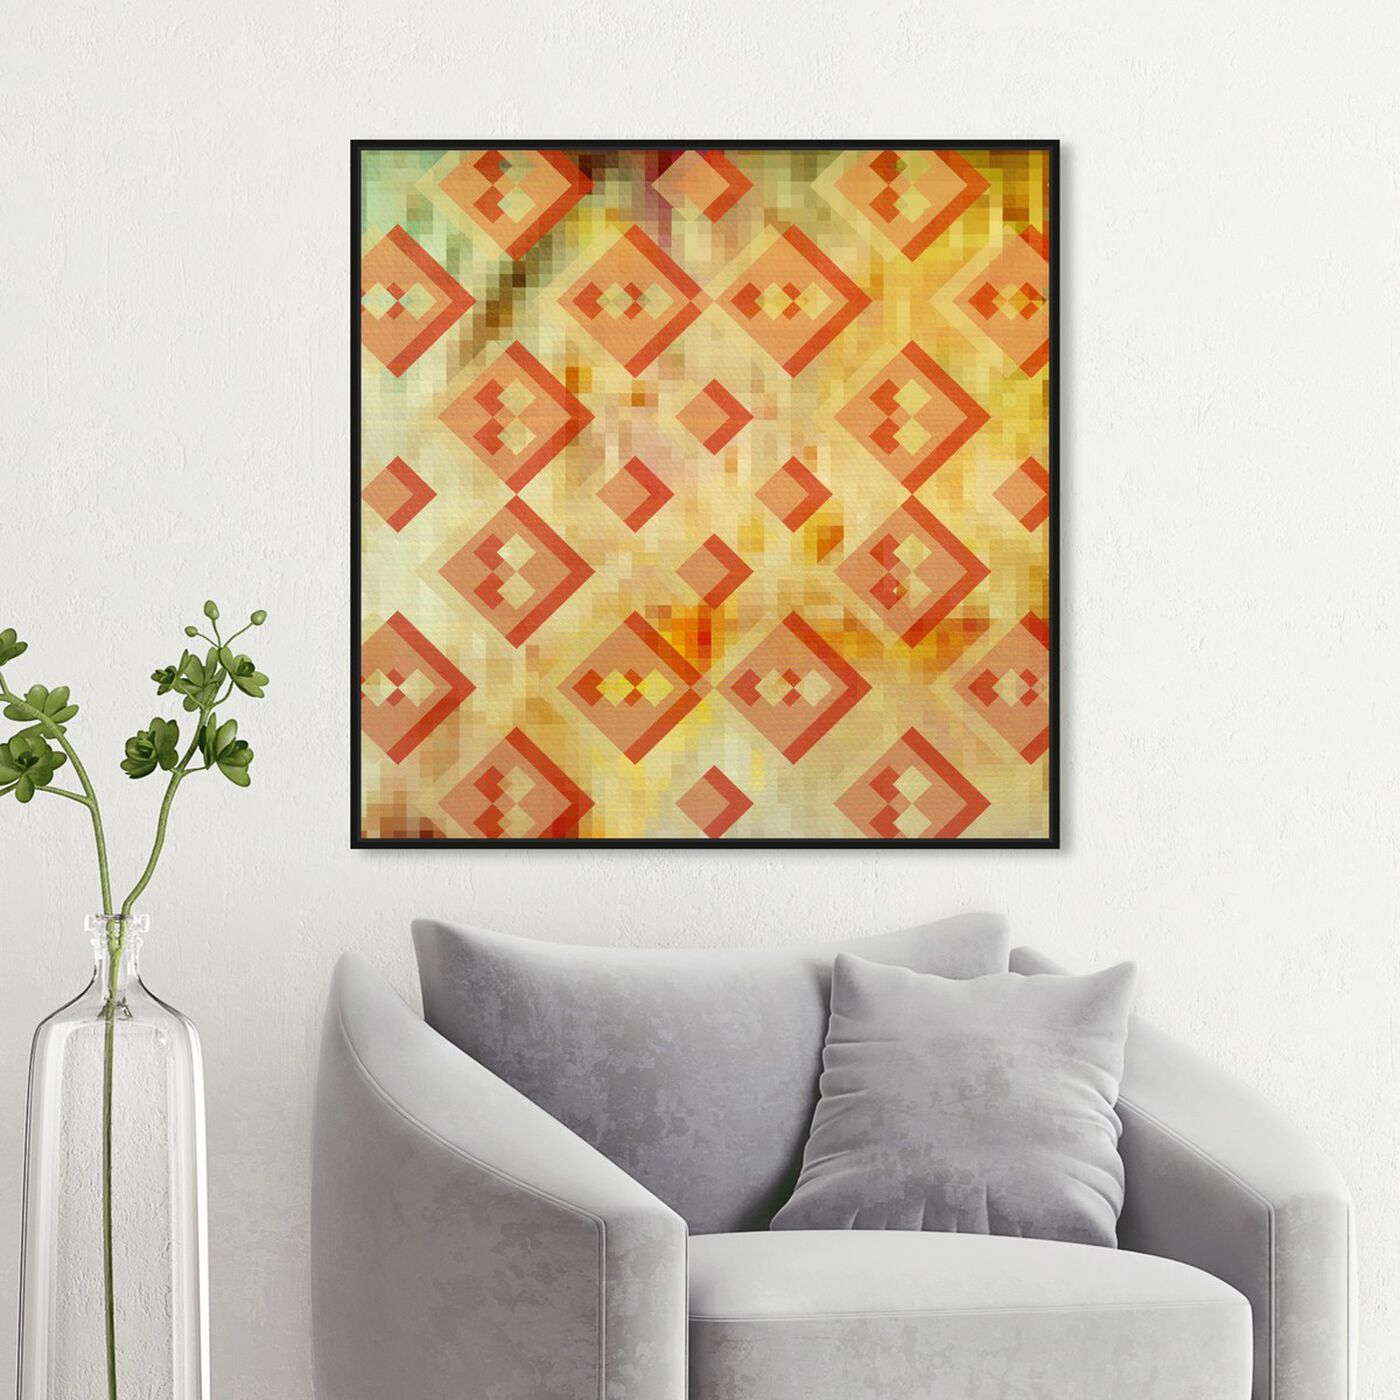 Hanging view of Reflecting Philosophy featuring abstract and geometric art.